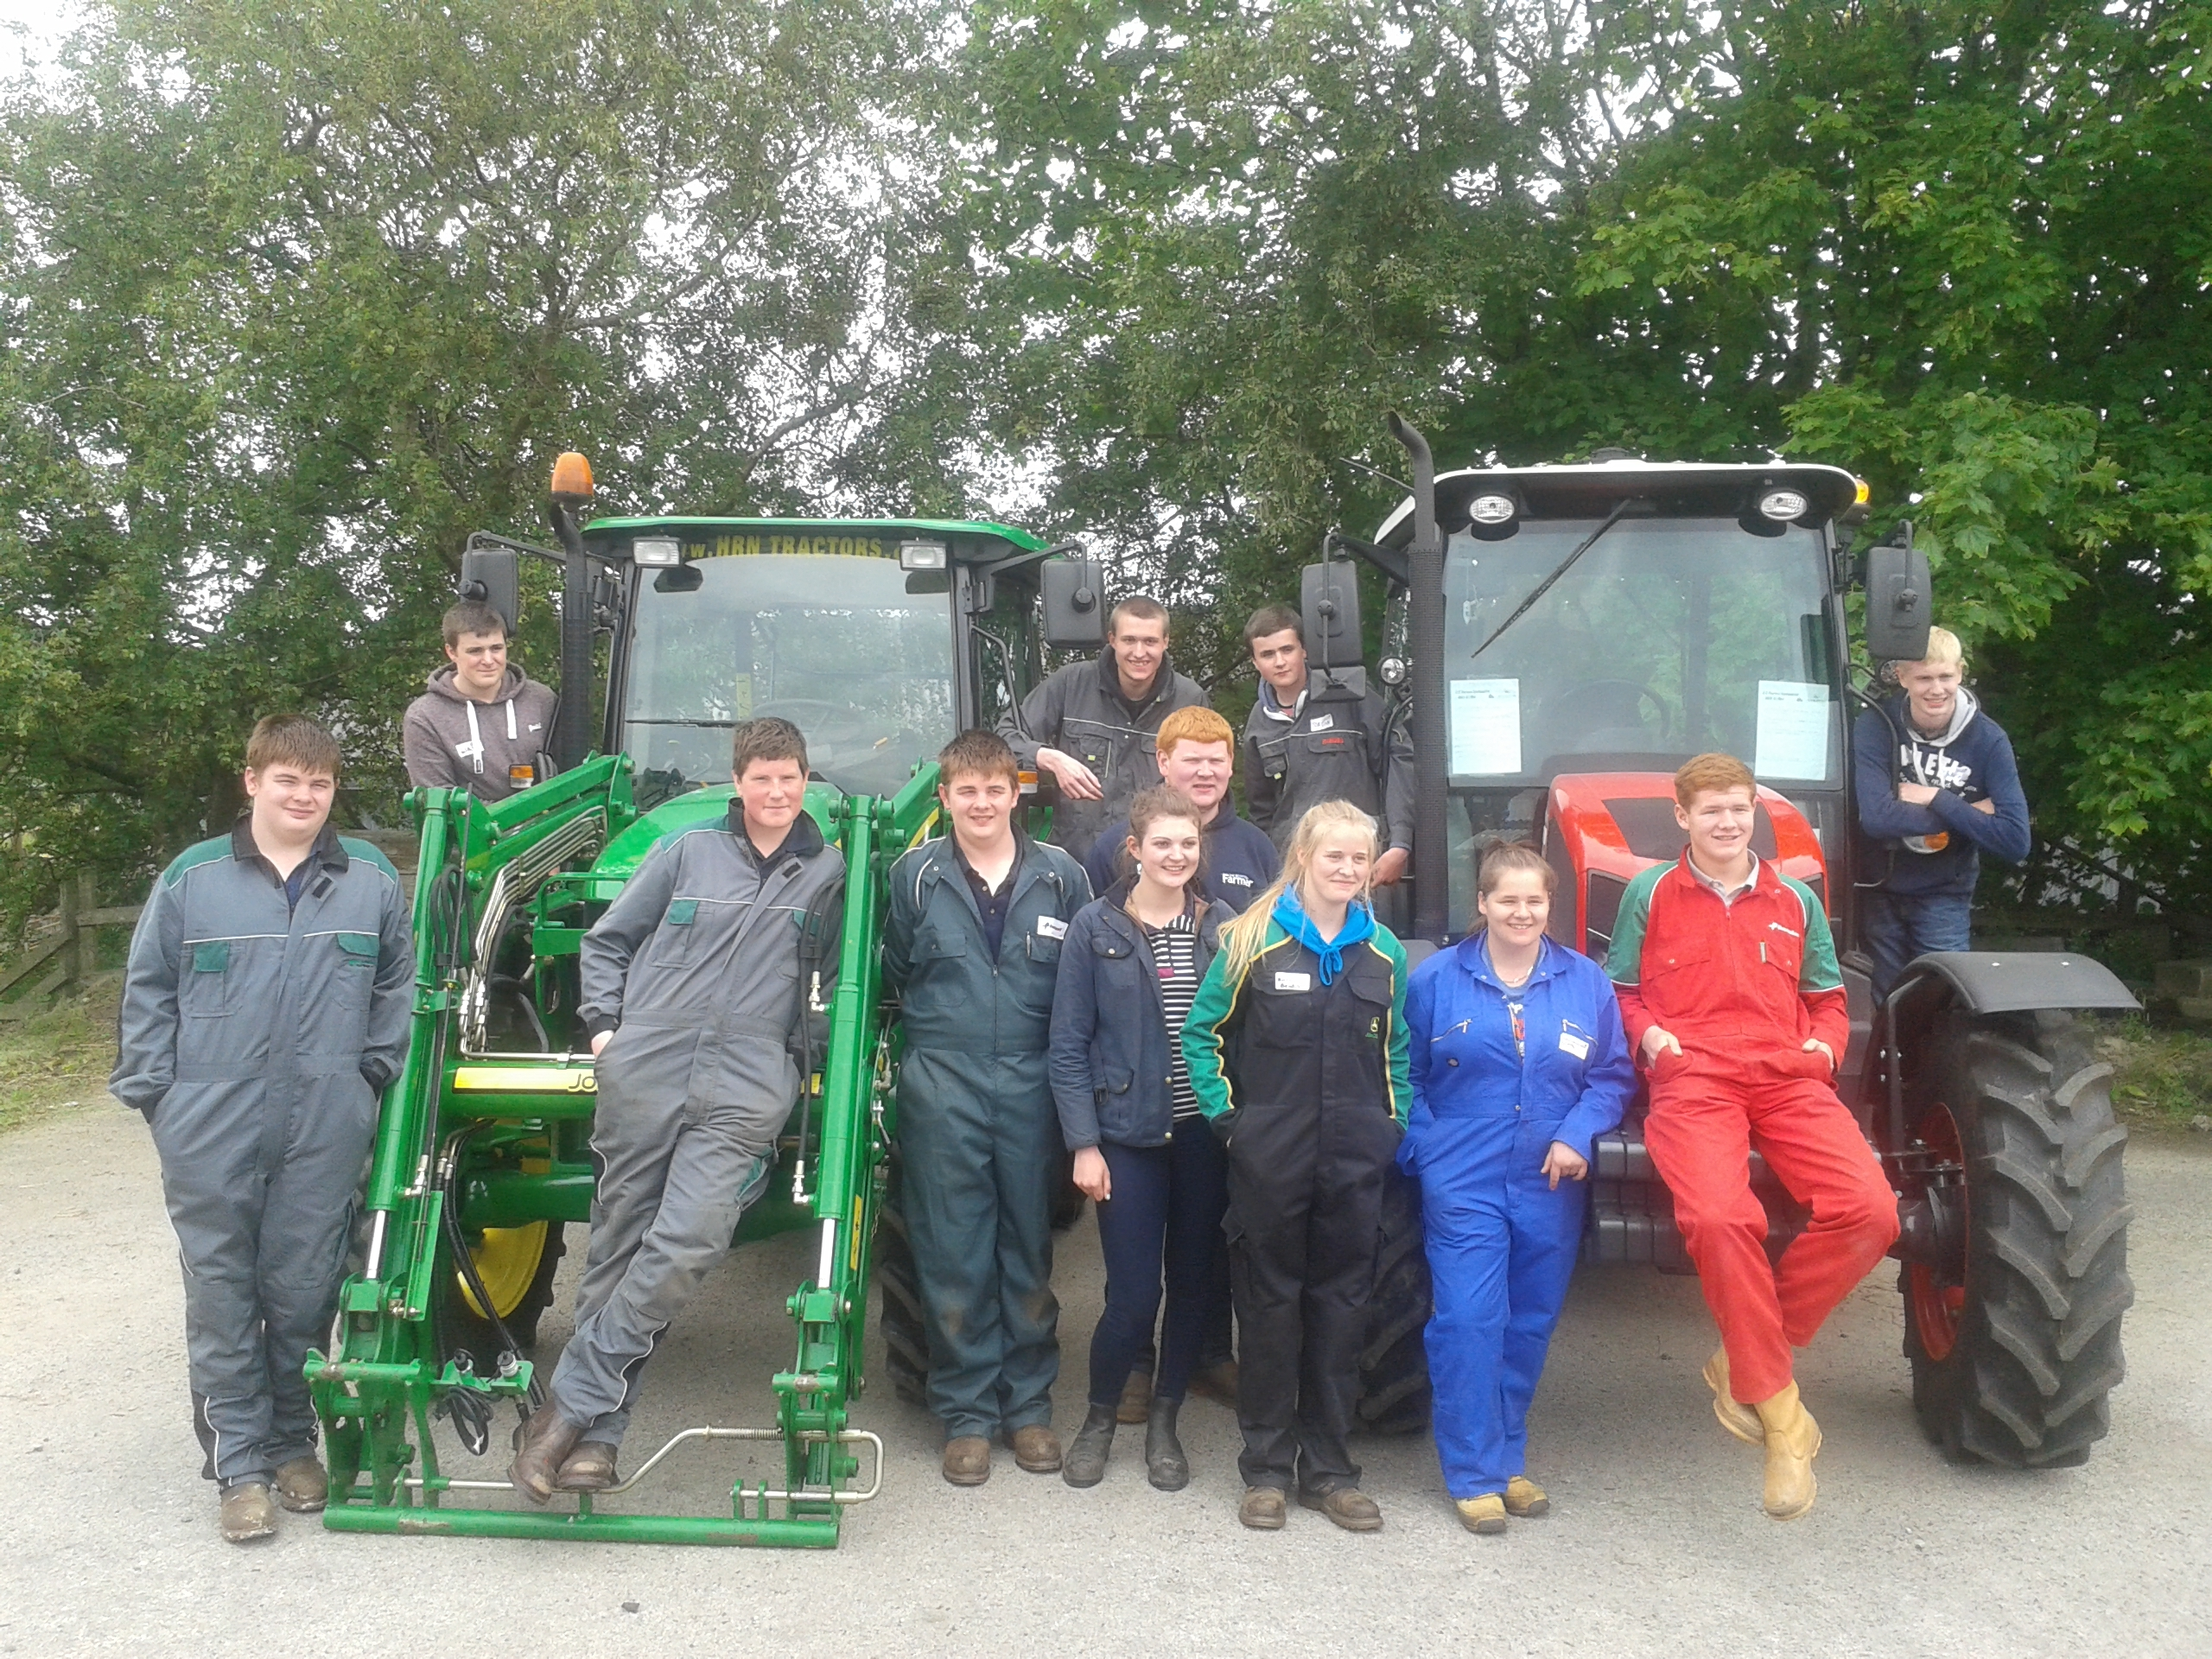 The interns are on farms across the north east